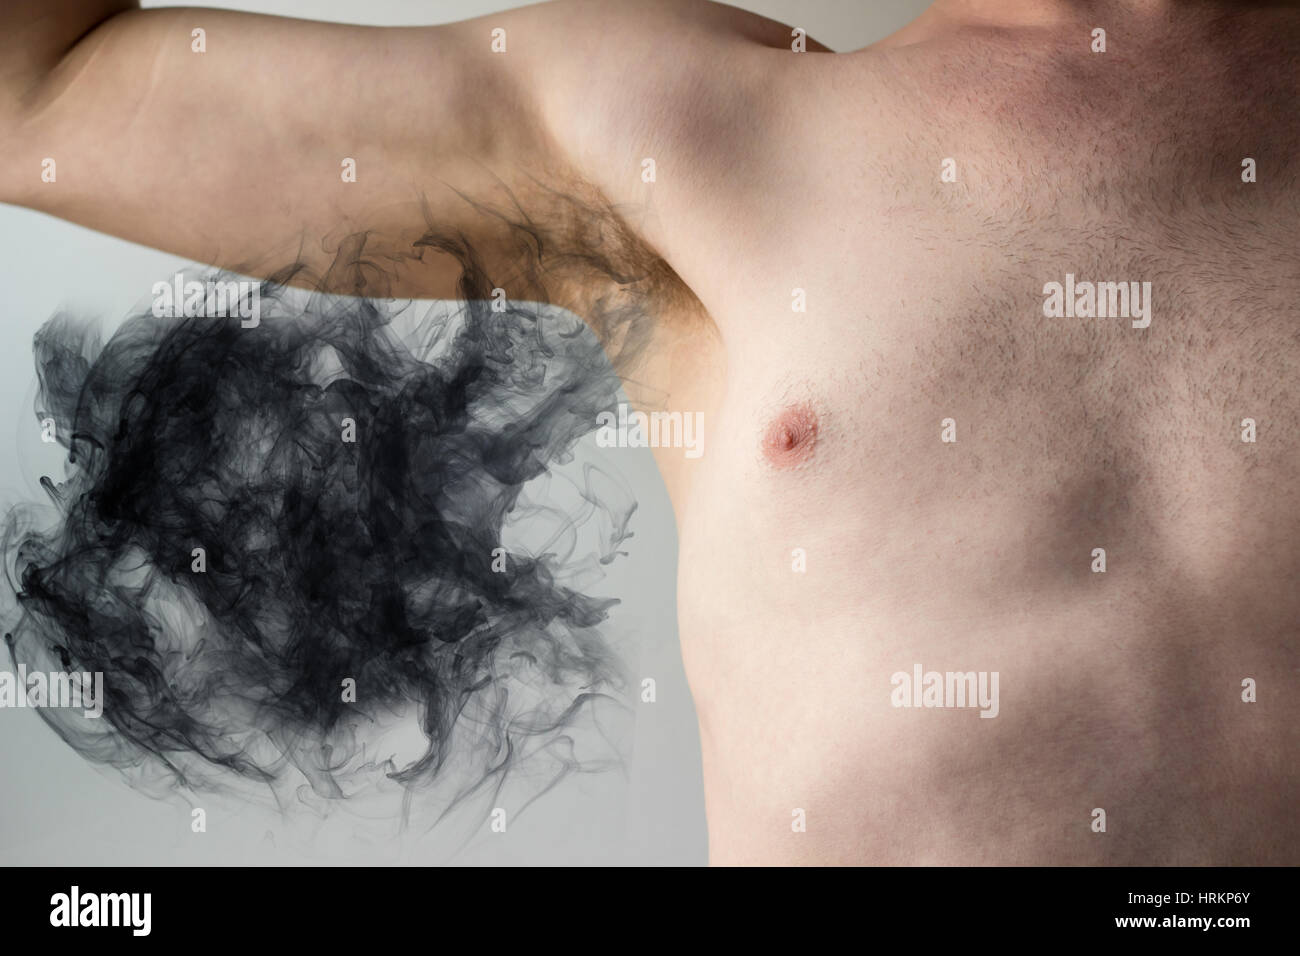 Plumes of smelly armpit body odor waft into the air - Stock Image